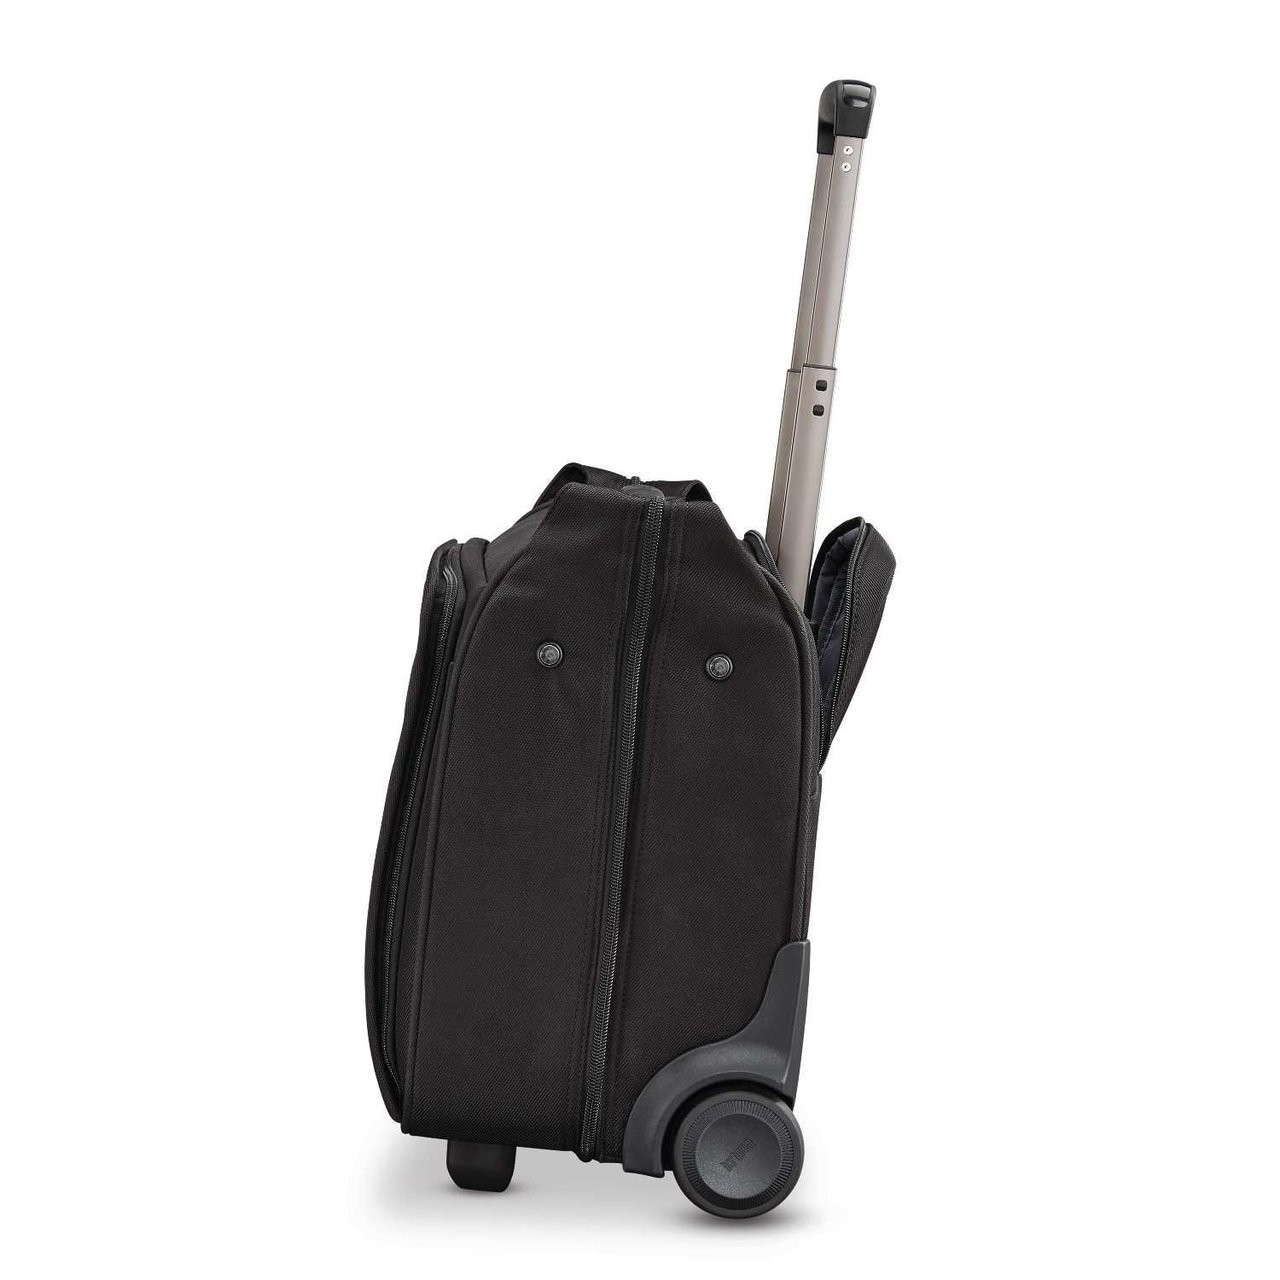 Hartmann Century Carry on Wheeled Garment Bag Suiter - LuggagePlanet.com 98a2aad3869ad